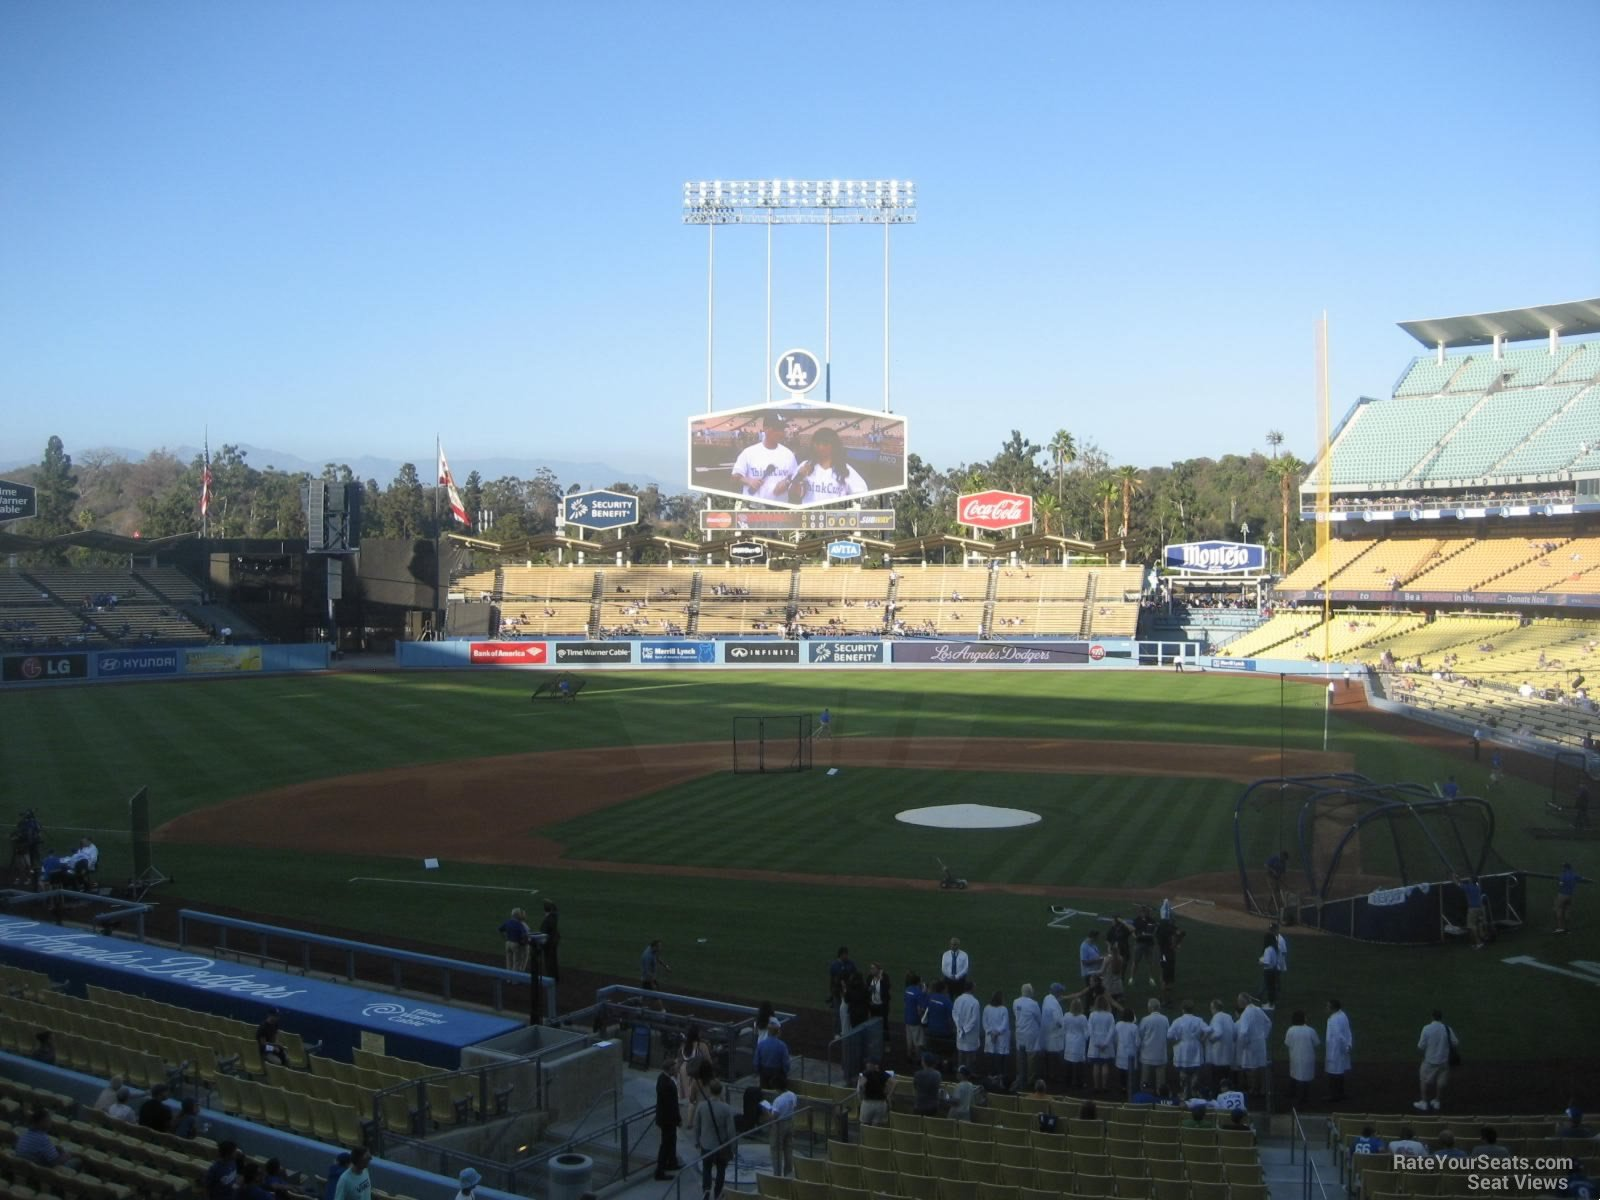 Dodger Stadium Section 119 - RateYourSeats.com